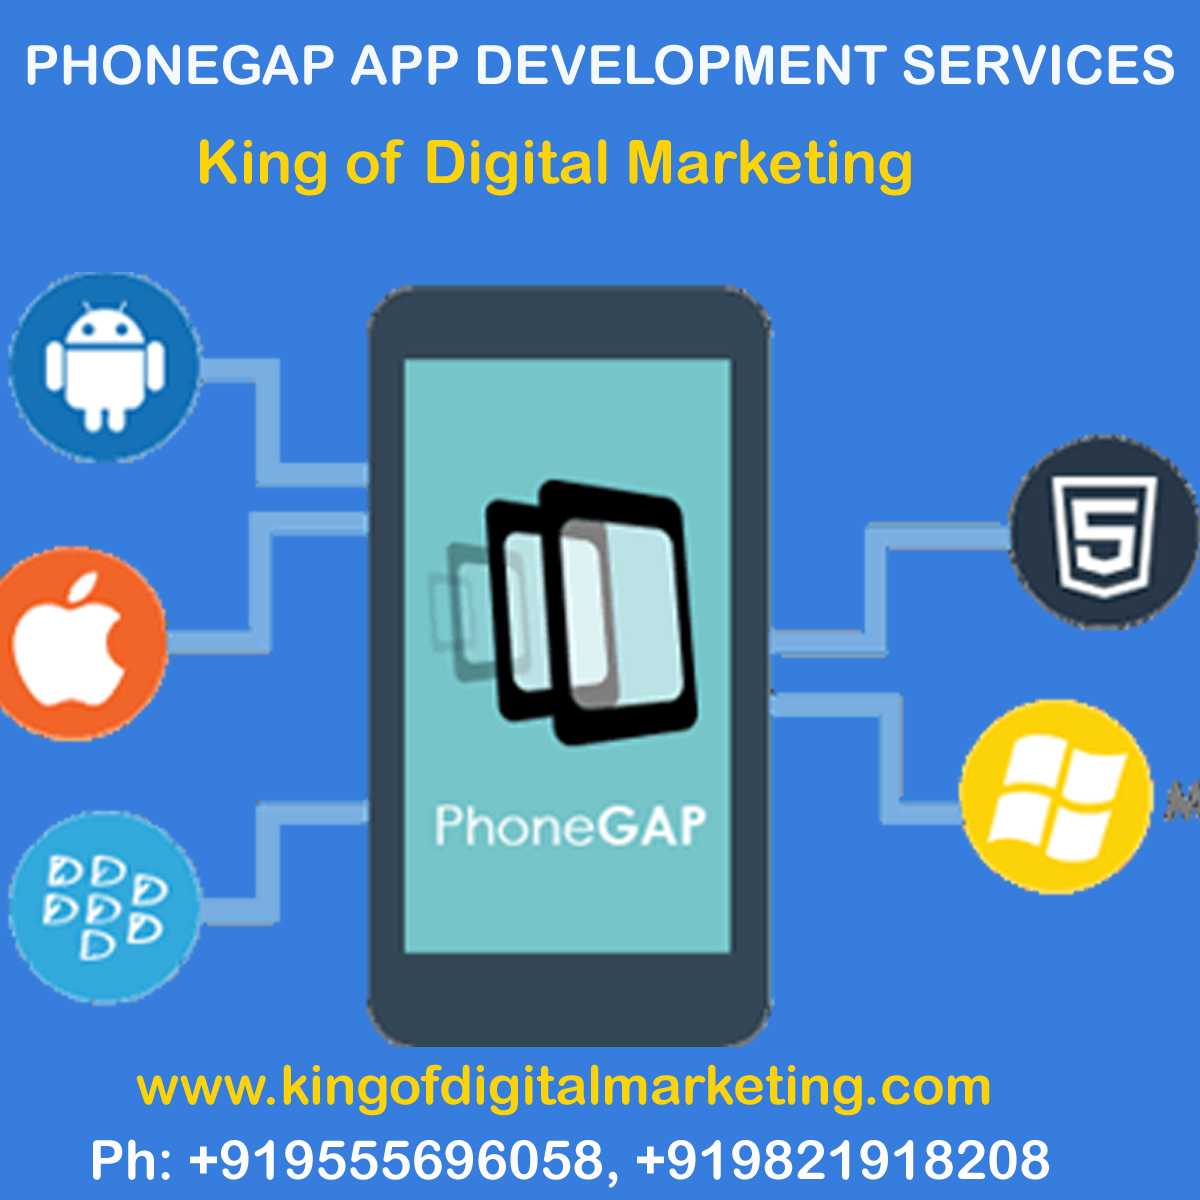 PhoneGap Mobile App Development Services Company in Delhi